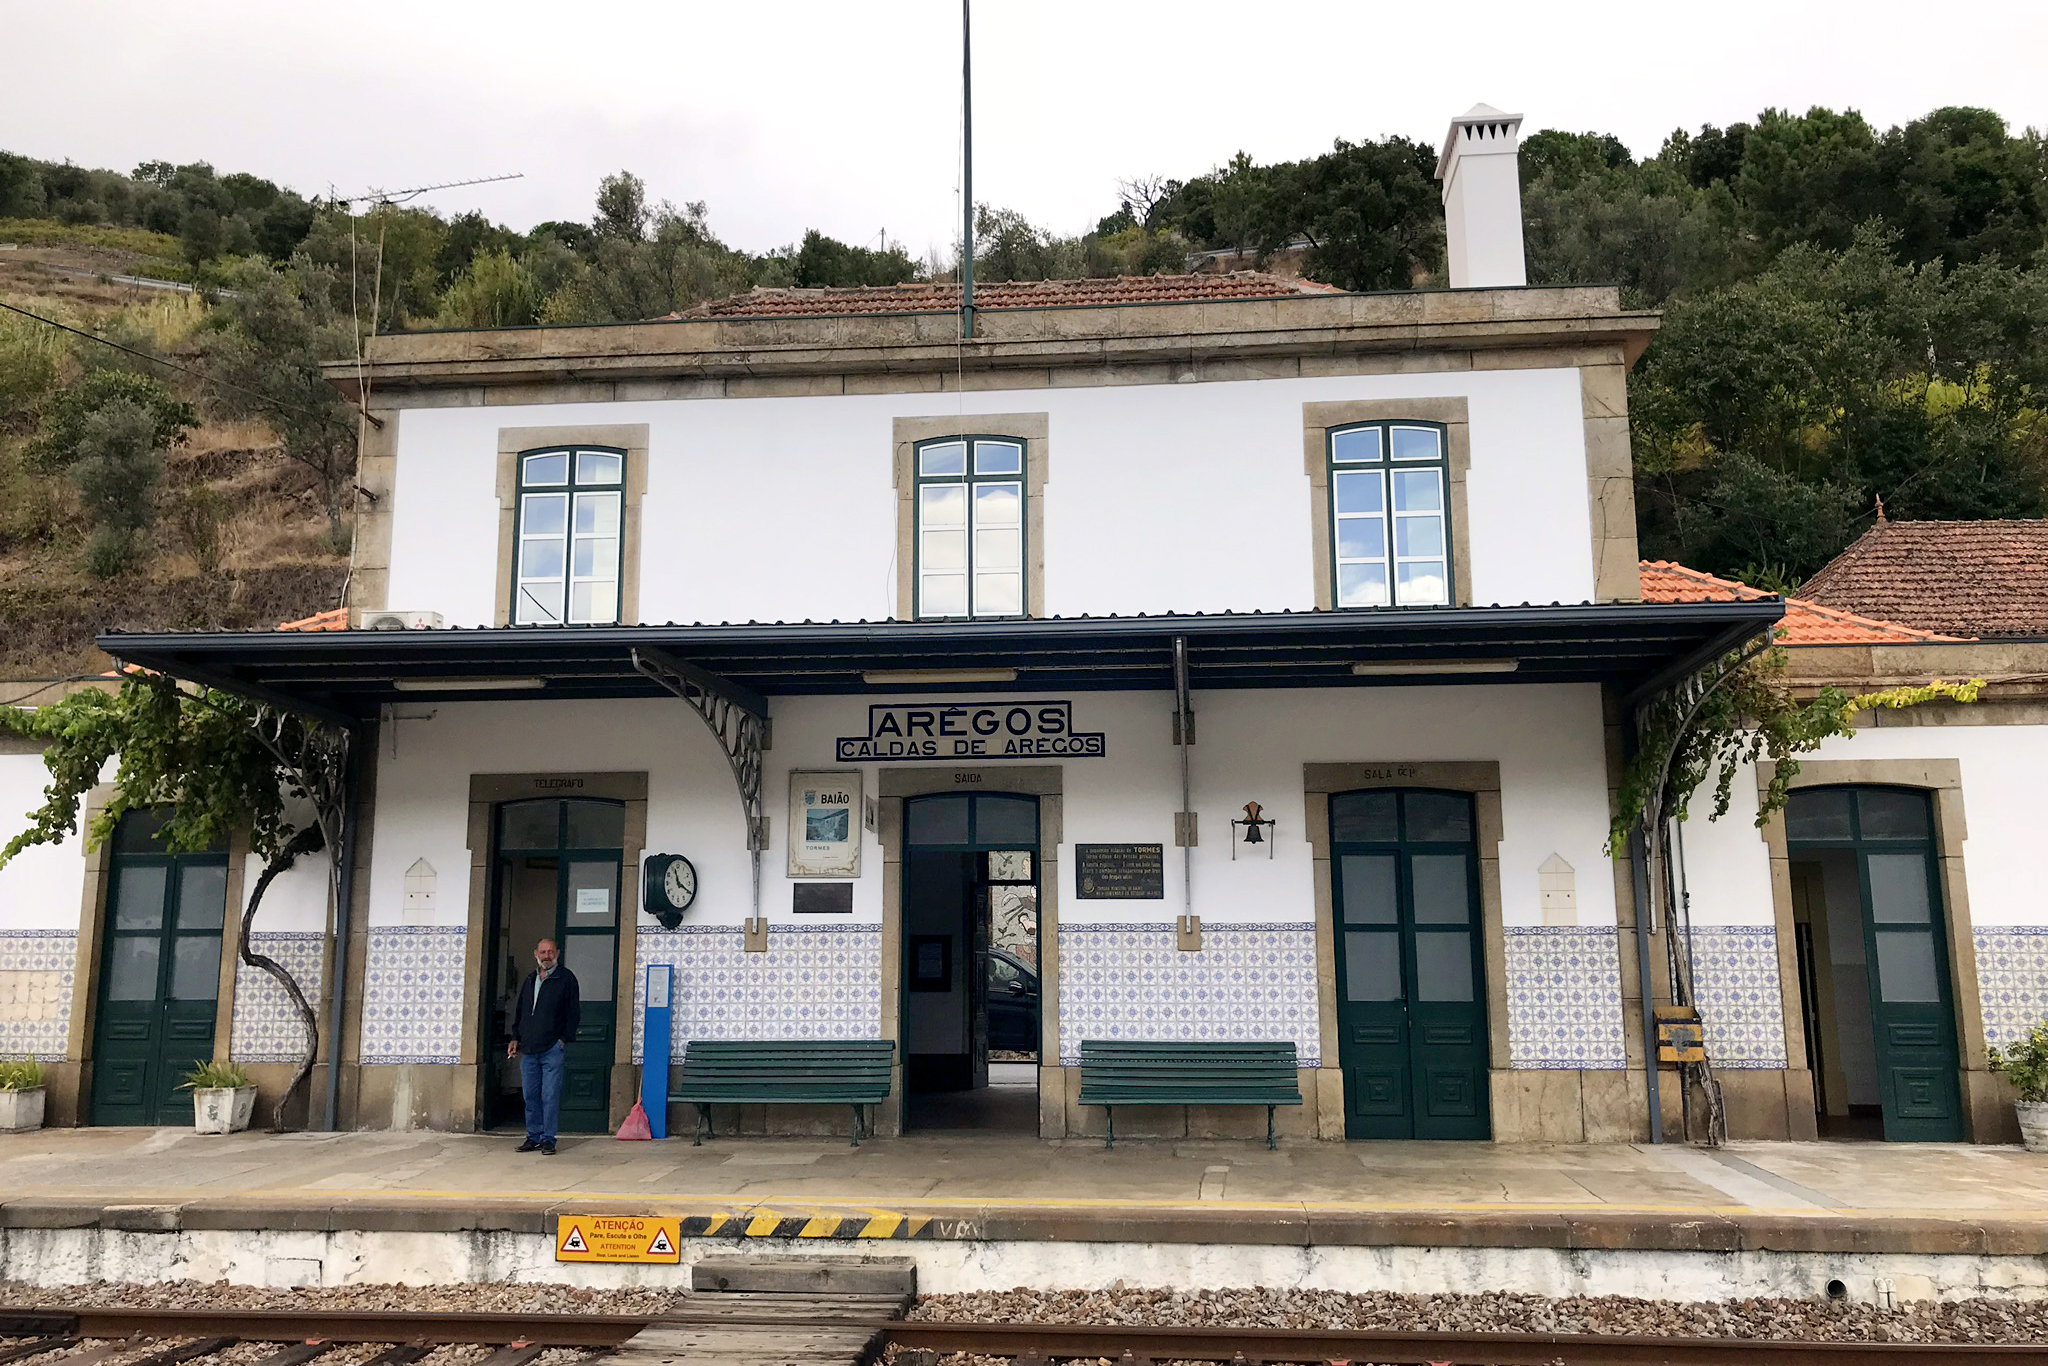 One of the quaint train stations in the Douro Valley